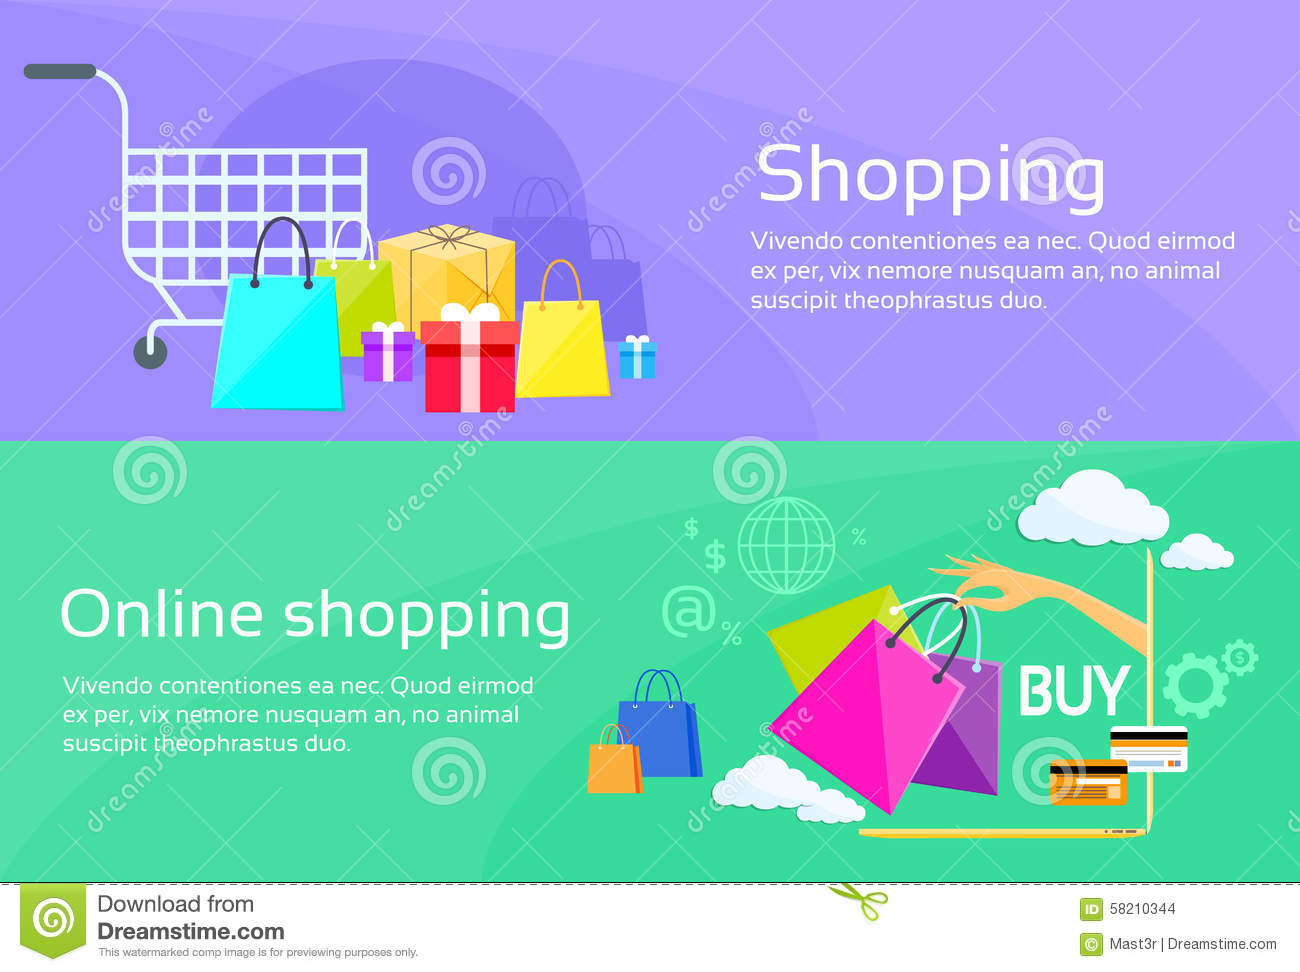 Online Shopping Web Banner Stock Vector - Image: 54936429